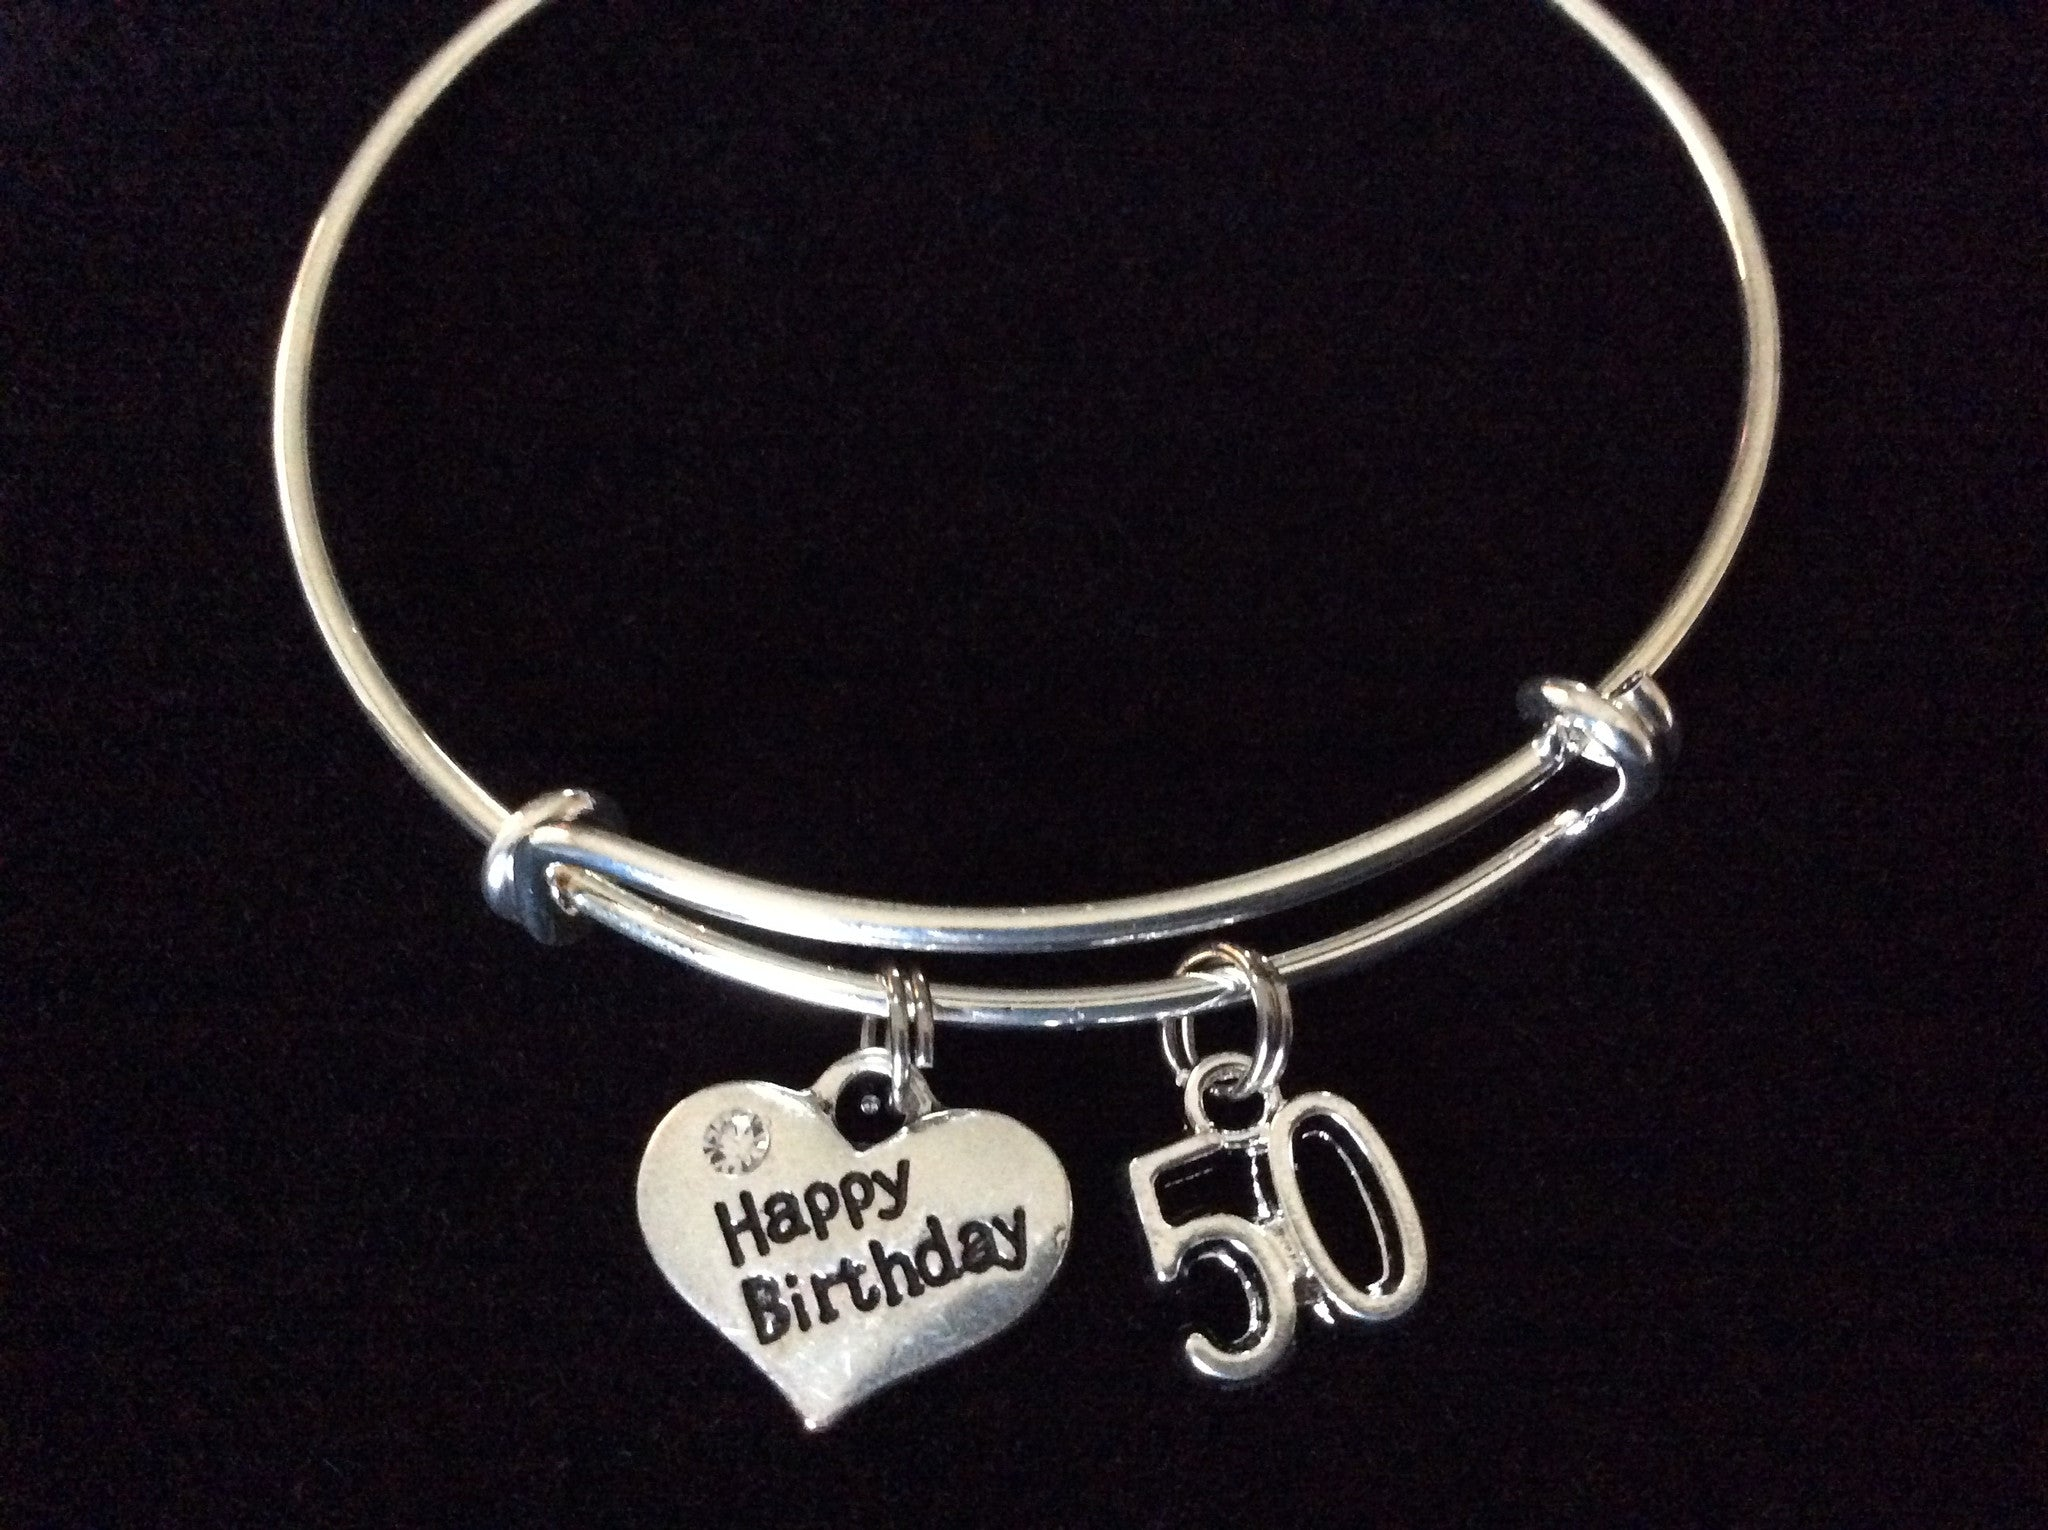 adjustable graduation il friend best charm sister bangle fullxfull caduceus bracelet p bangles med tech daughter gift